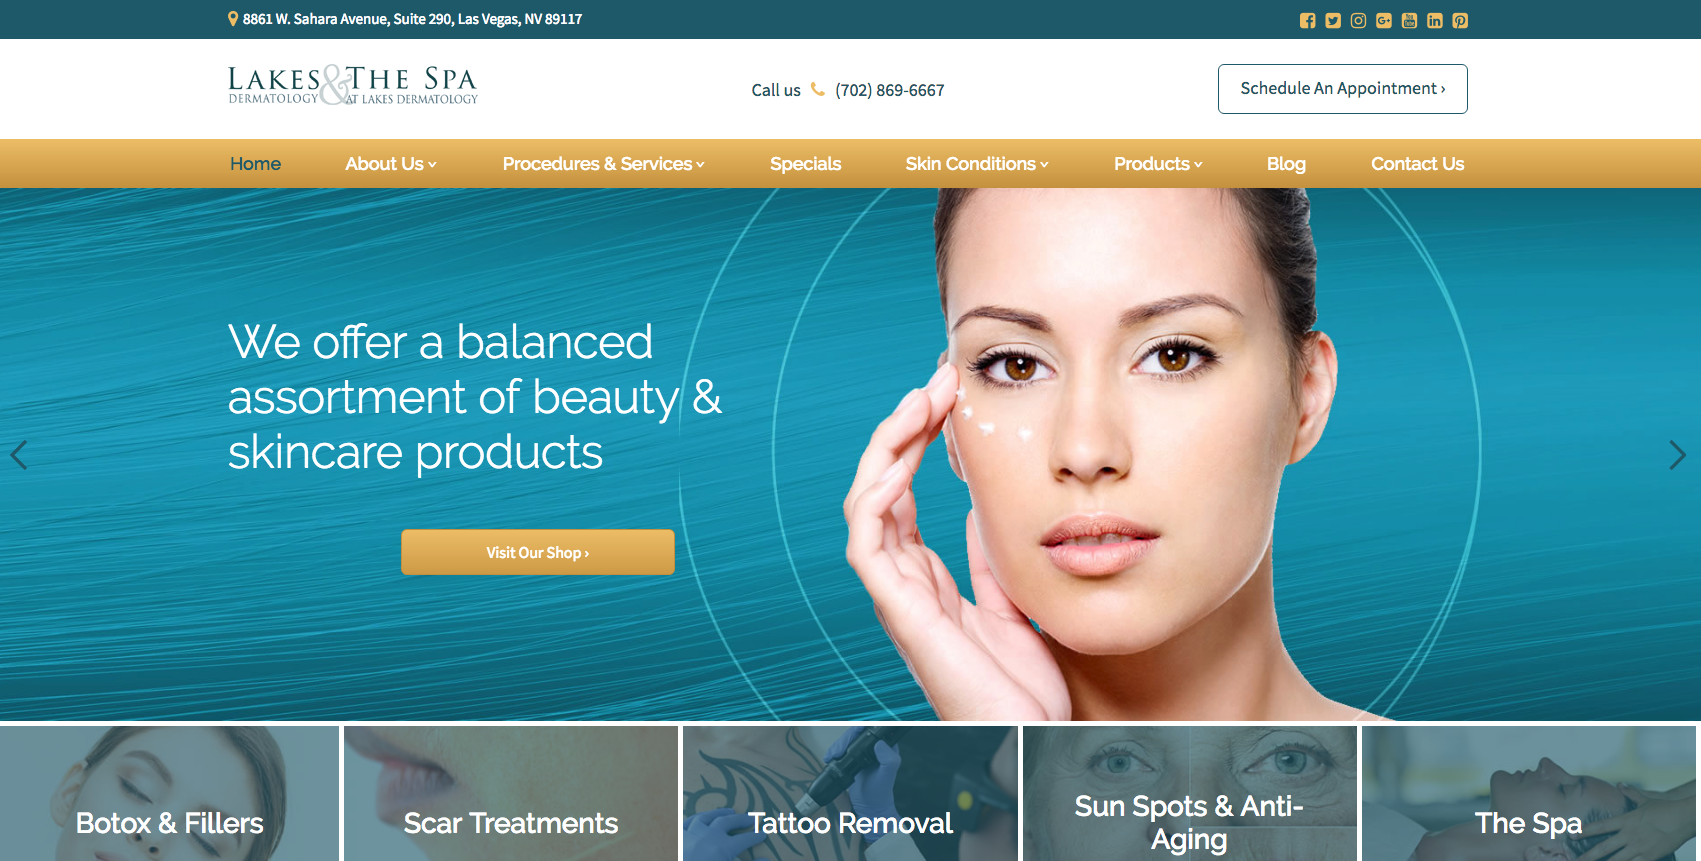 Lakes Dermatology Website & Logo